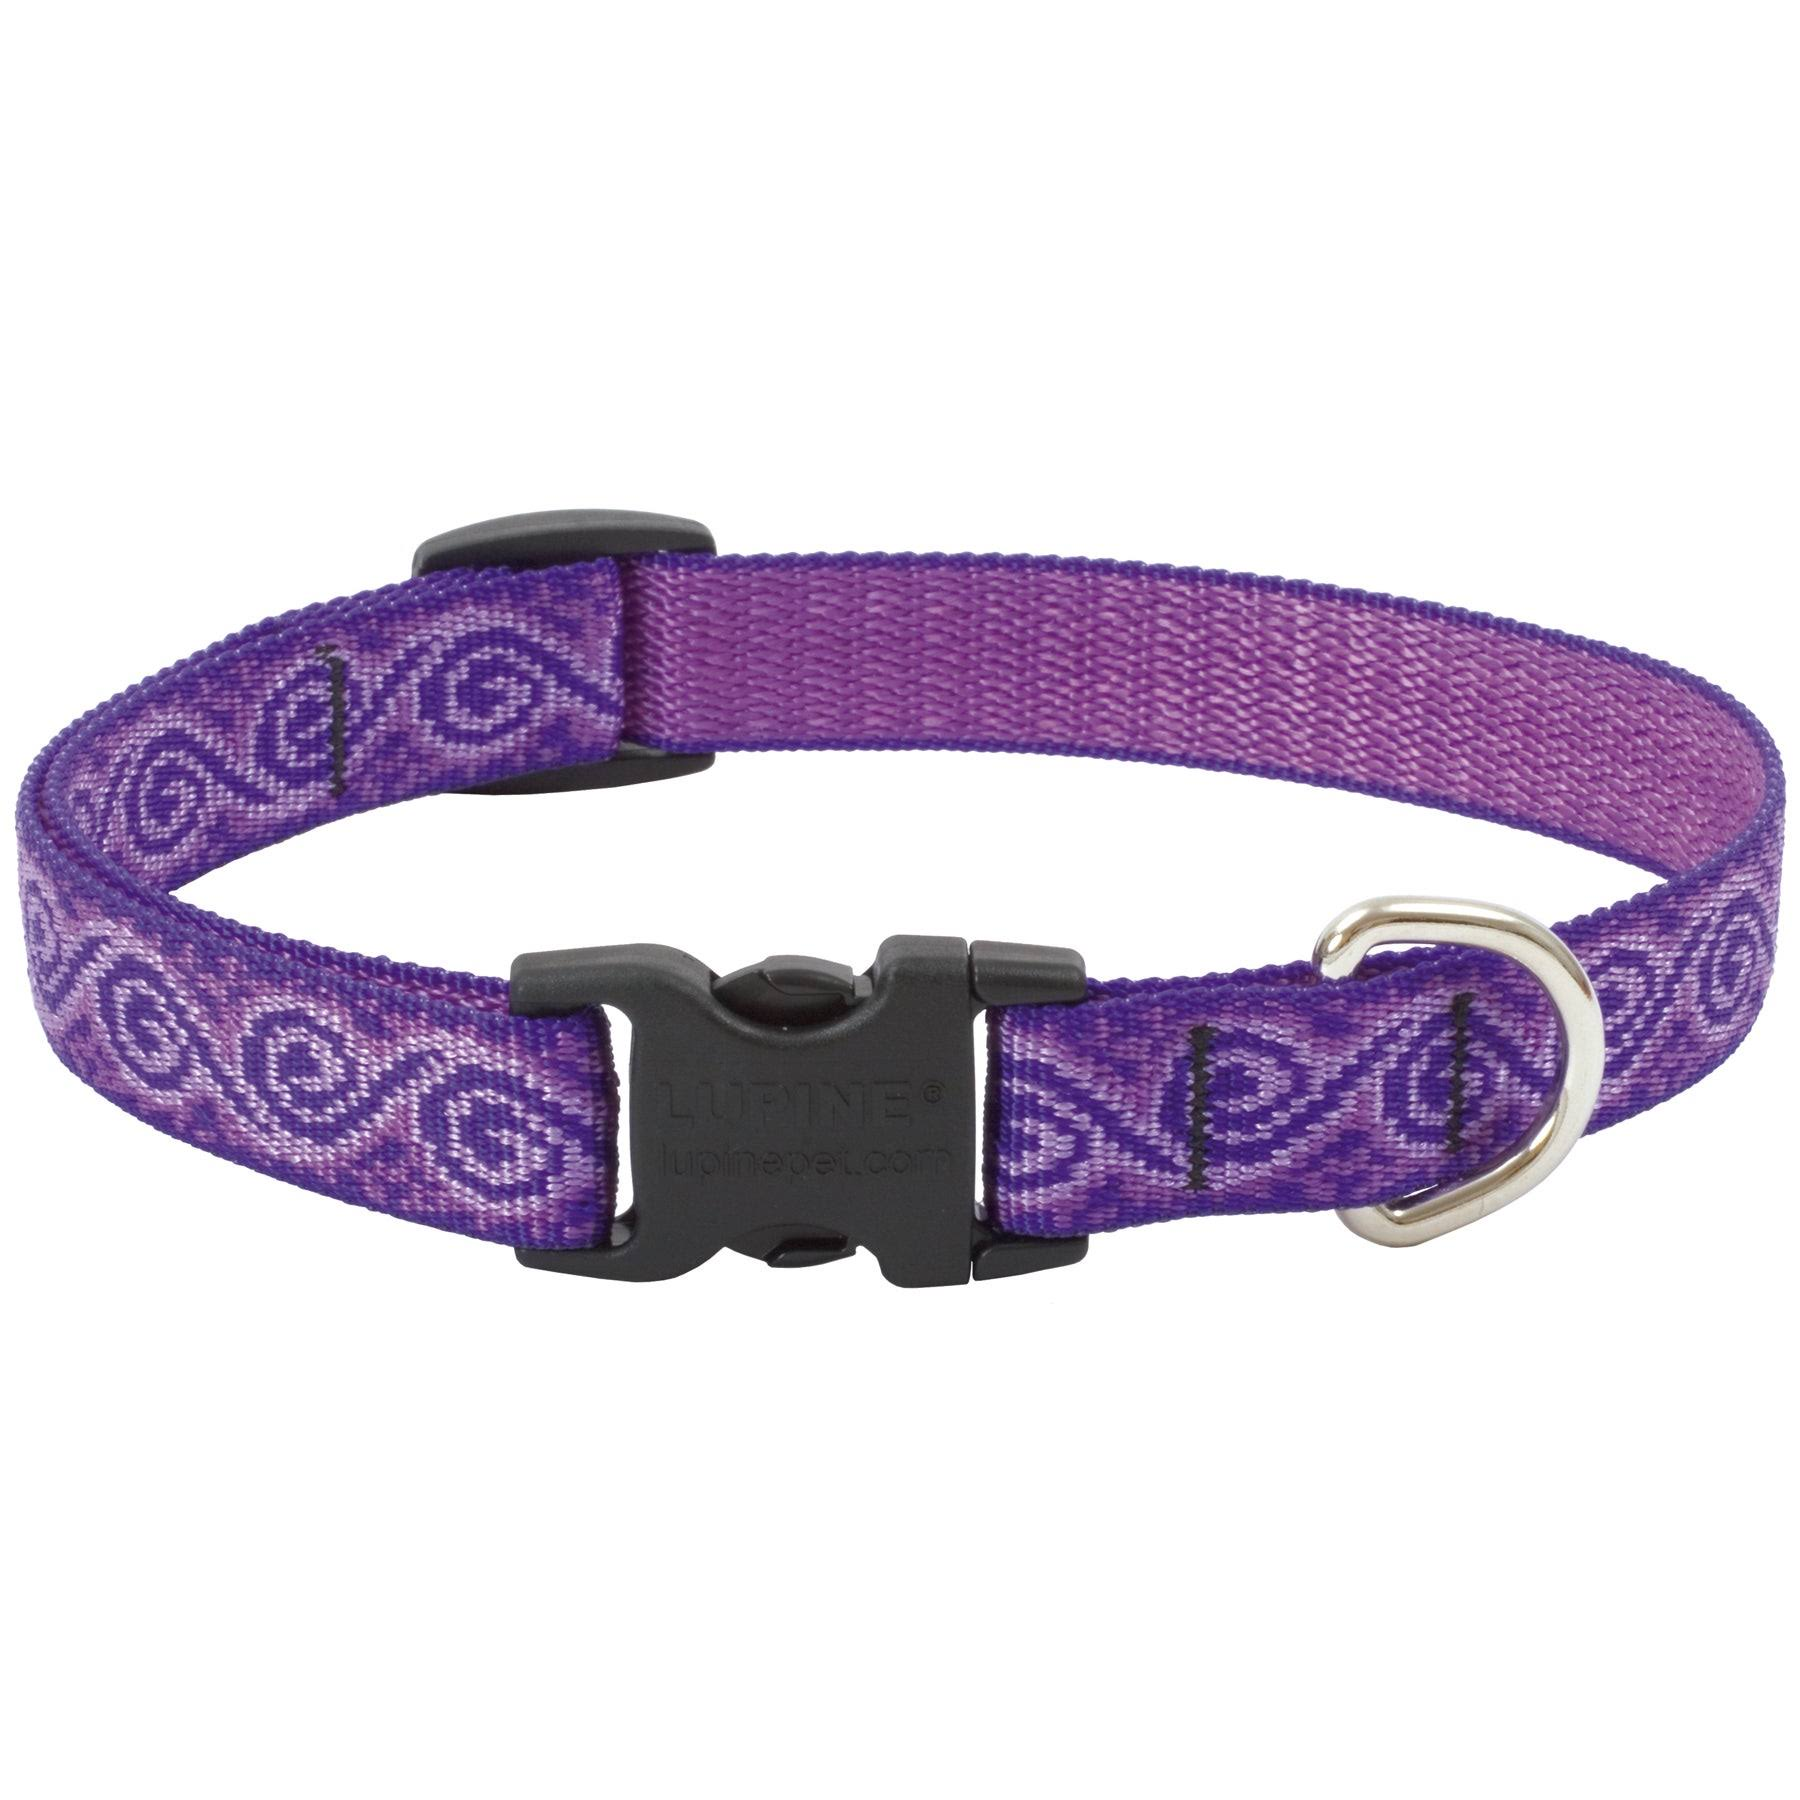 "Lupine Jelly Roll Patterned Dog Collar - for Small-Medium Dogs, 3/4"" Width, Adjustable, 9-14"""